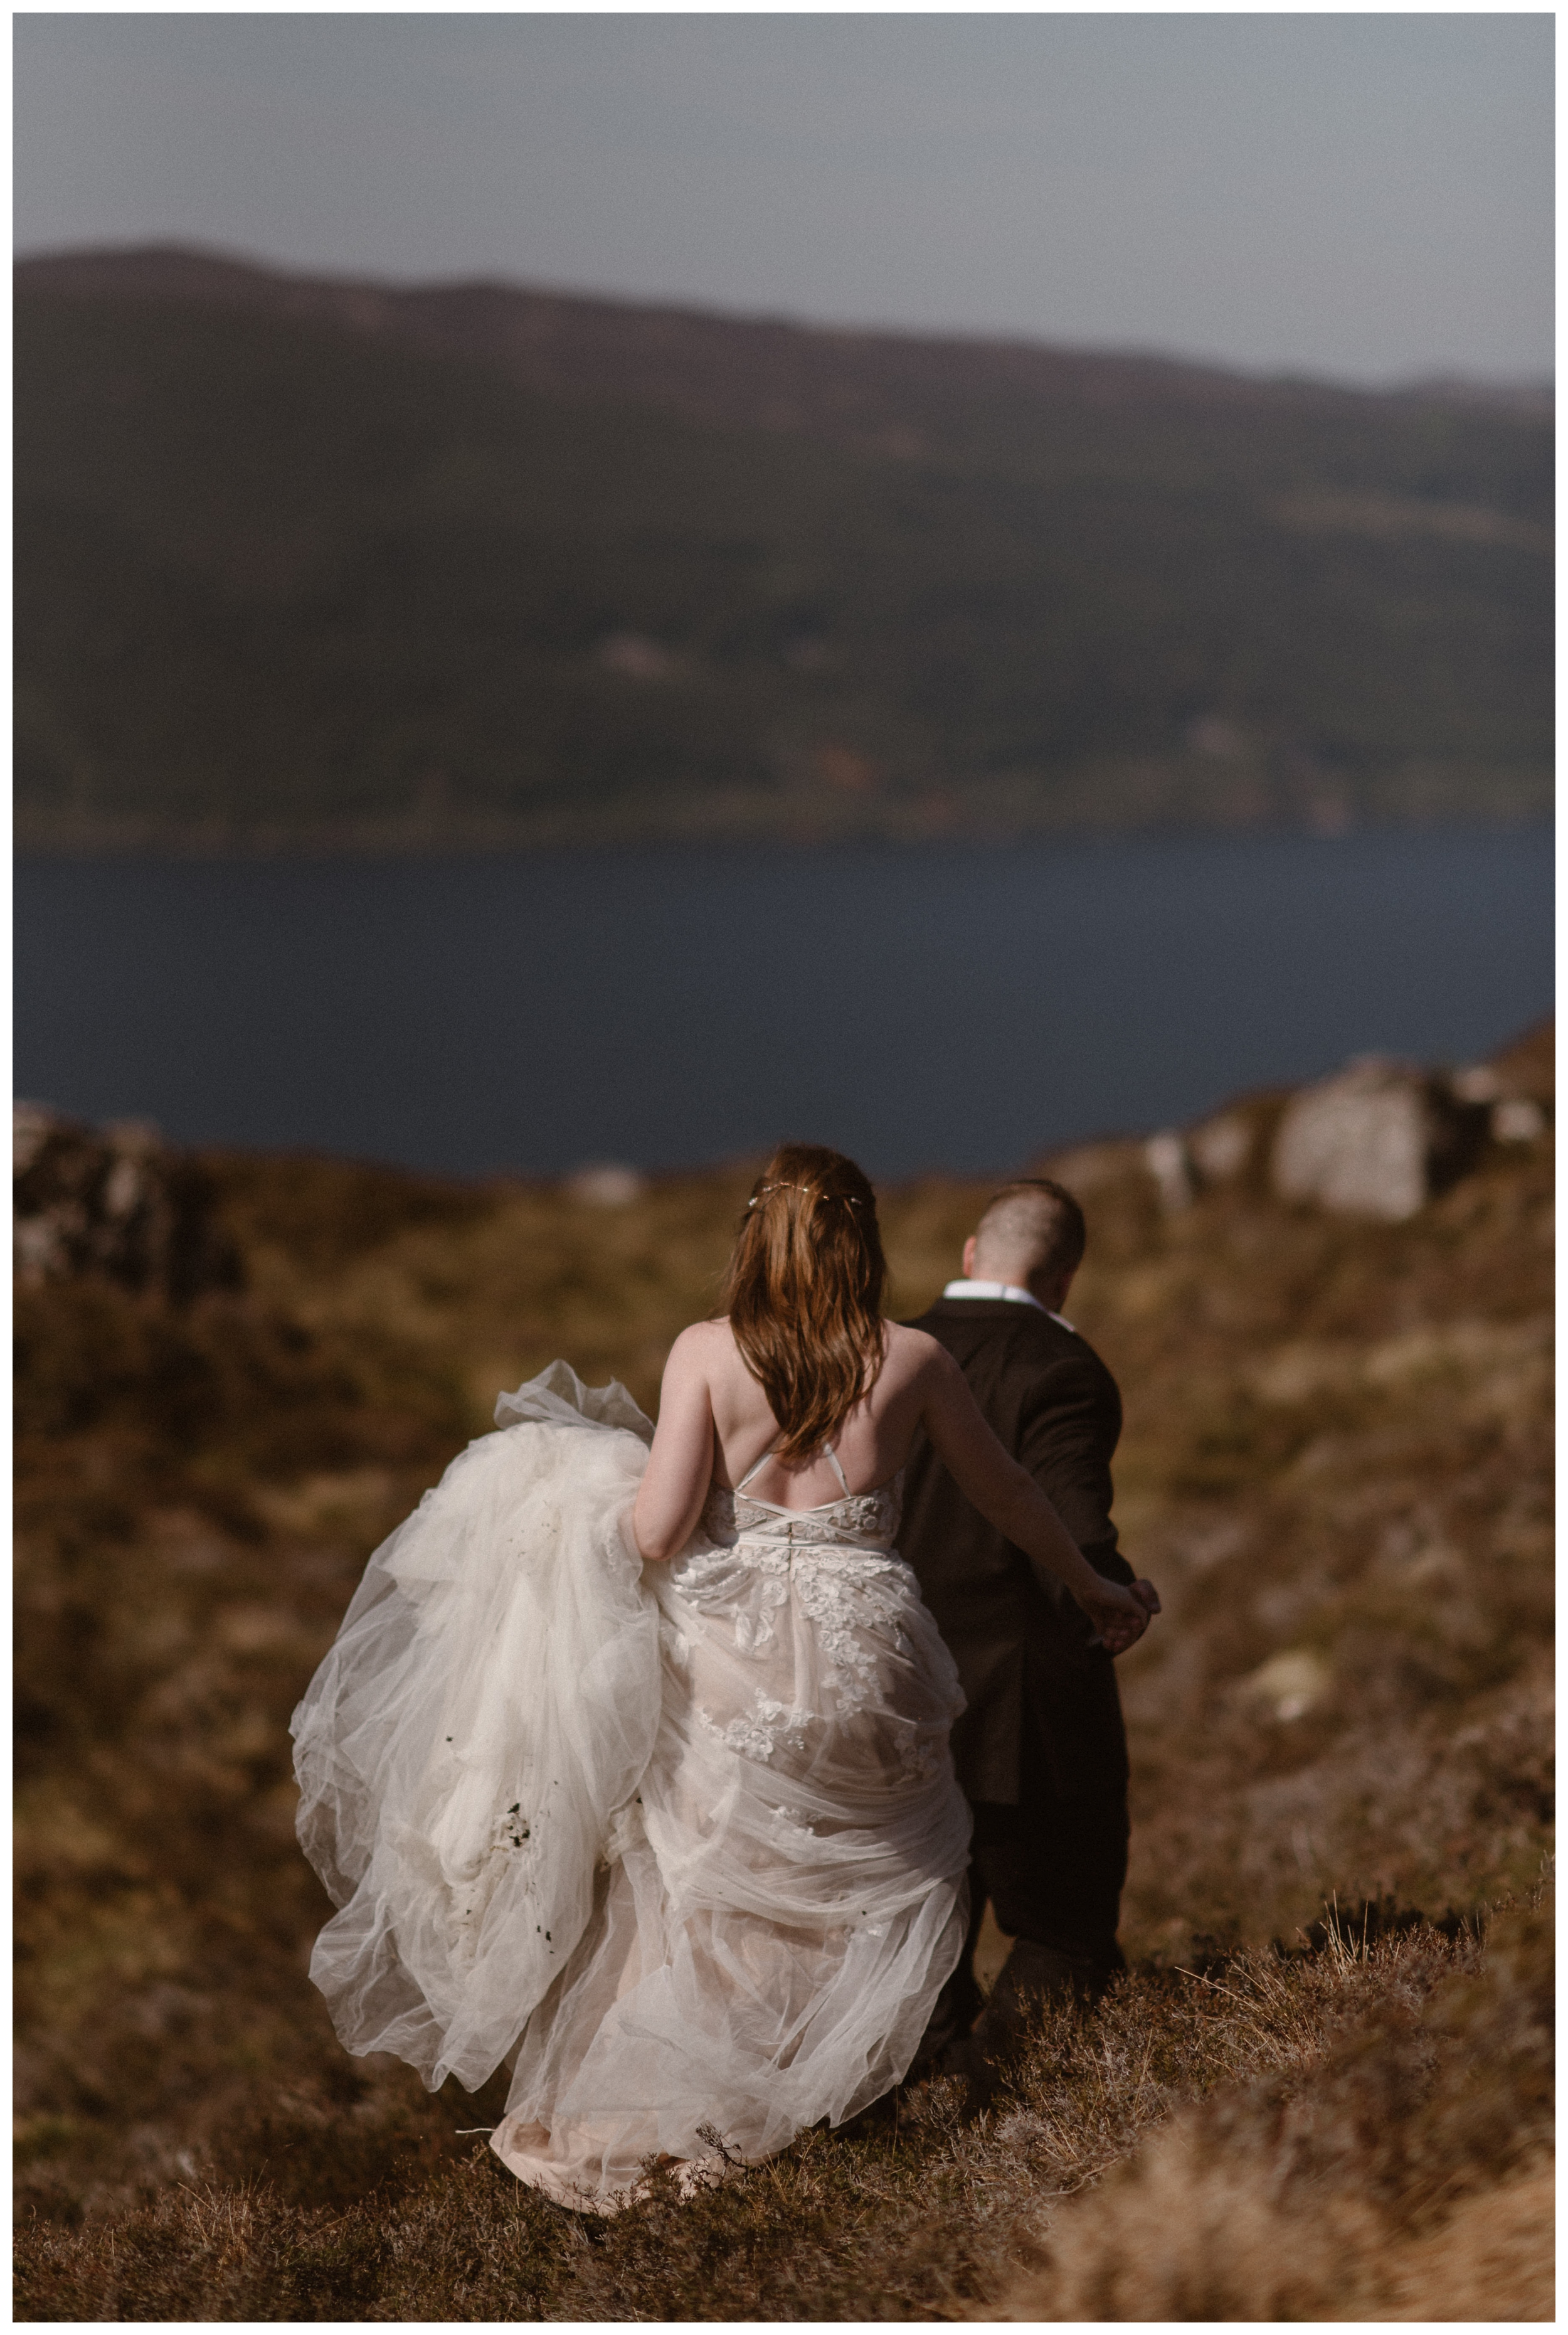 Elissa and Daniel hiked, wandered, and explored the shores of Loch ness in the Scottish Highlands in their wedding day attire following their Glencoe, Scotland elopement. Photo by Maddie Mae, Adventure Instead.